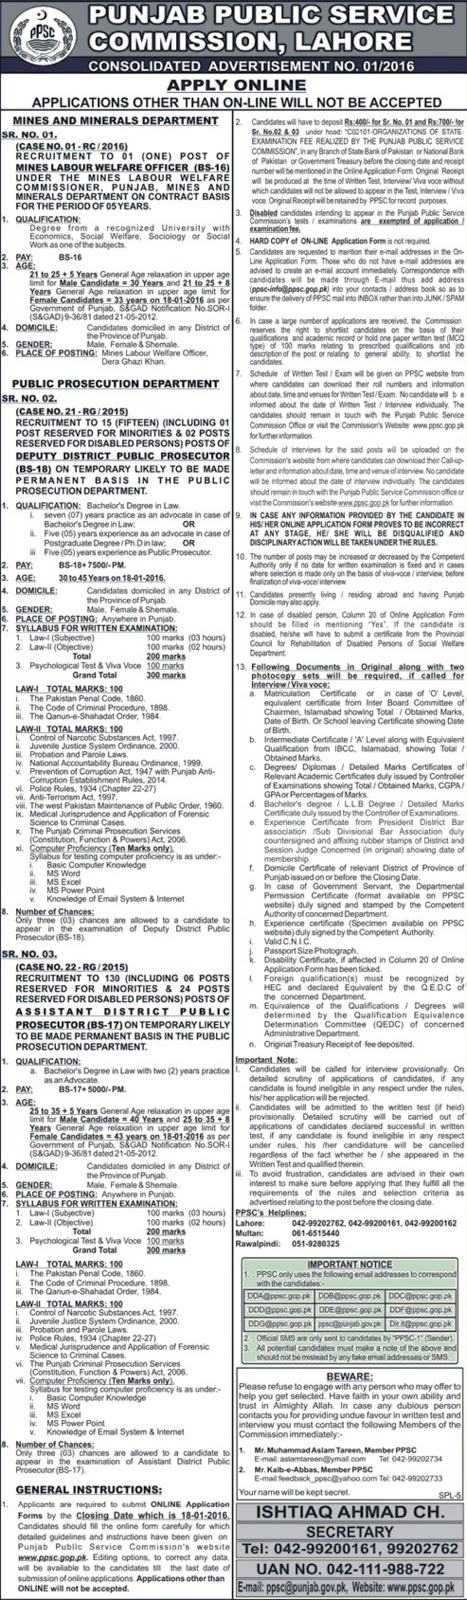 LLB Jobs in PPSC Punjab Public Service Commission Jobs in Punjab